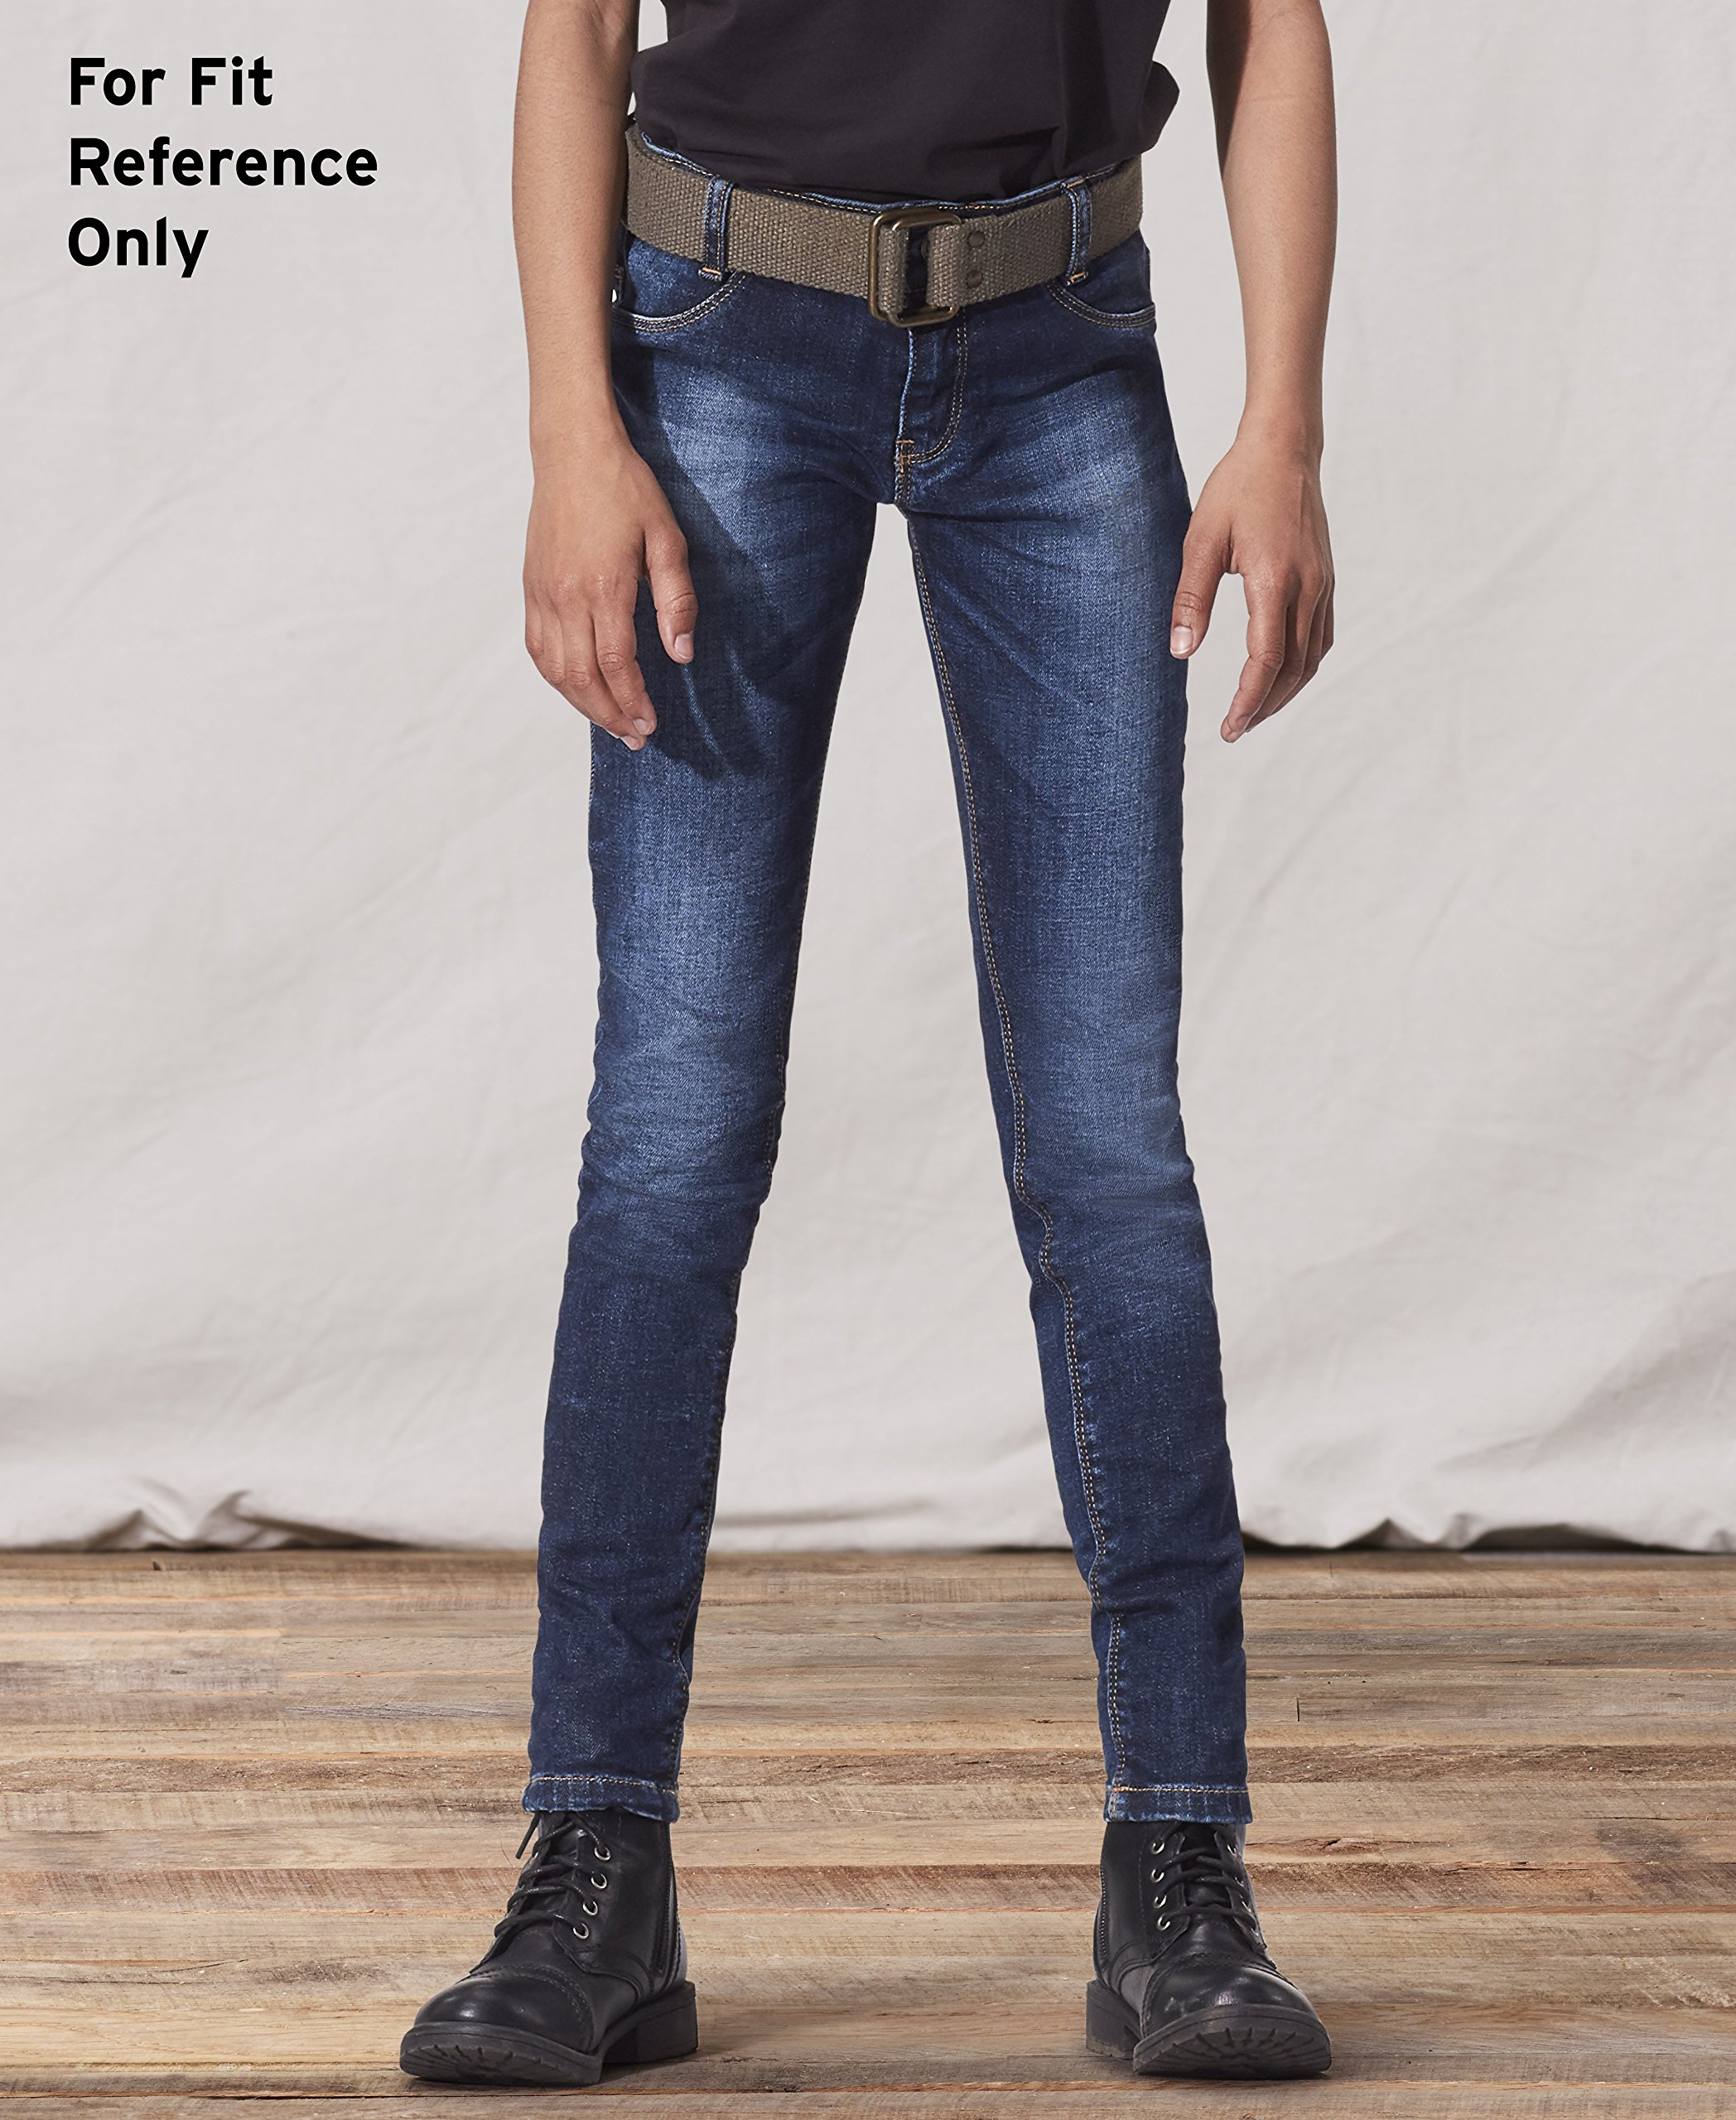 Levi's Girls 7-16 Regs 2702 Denim Legging, Night Out, 16 by Levi's (Image #3)